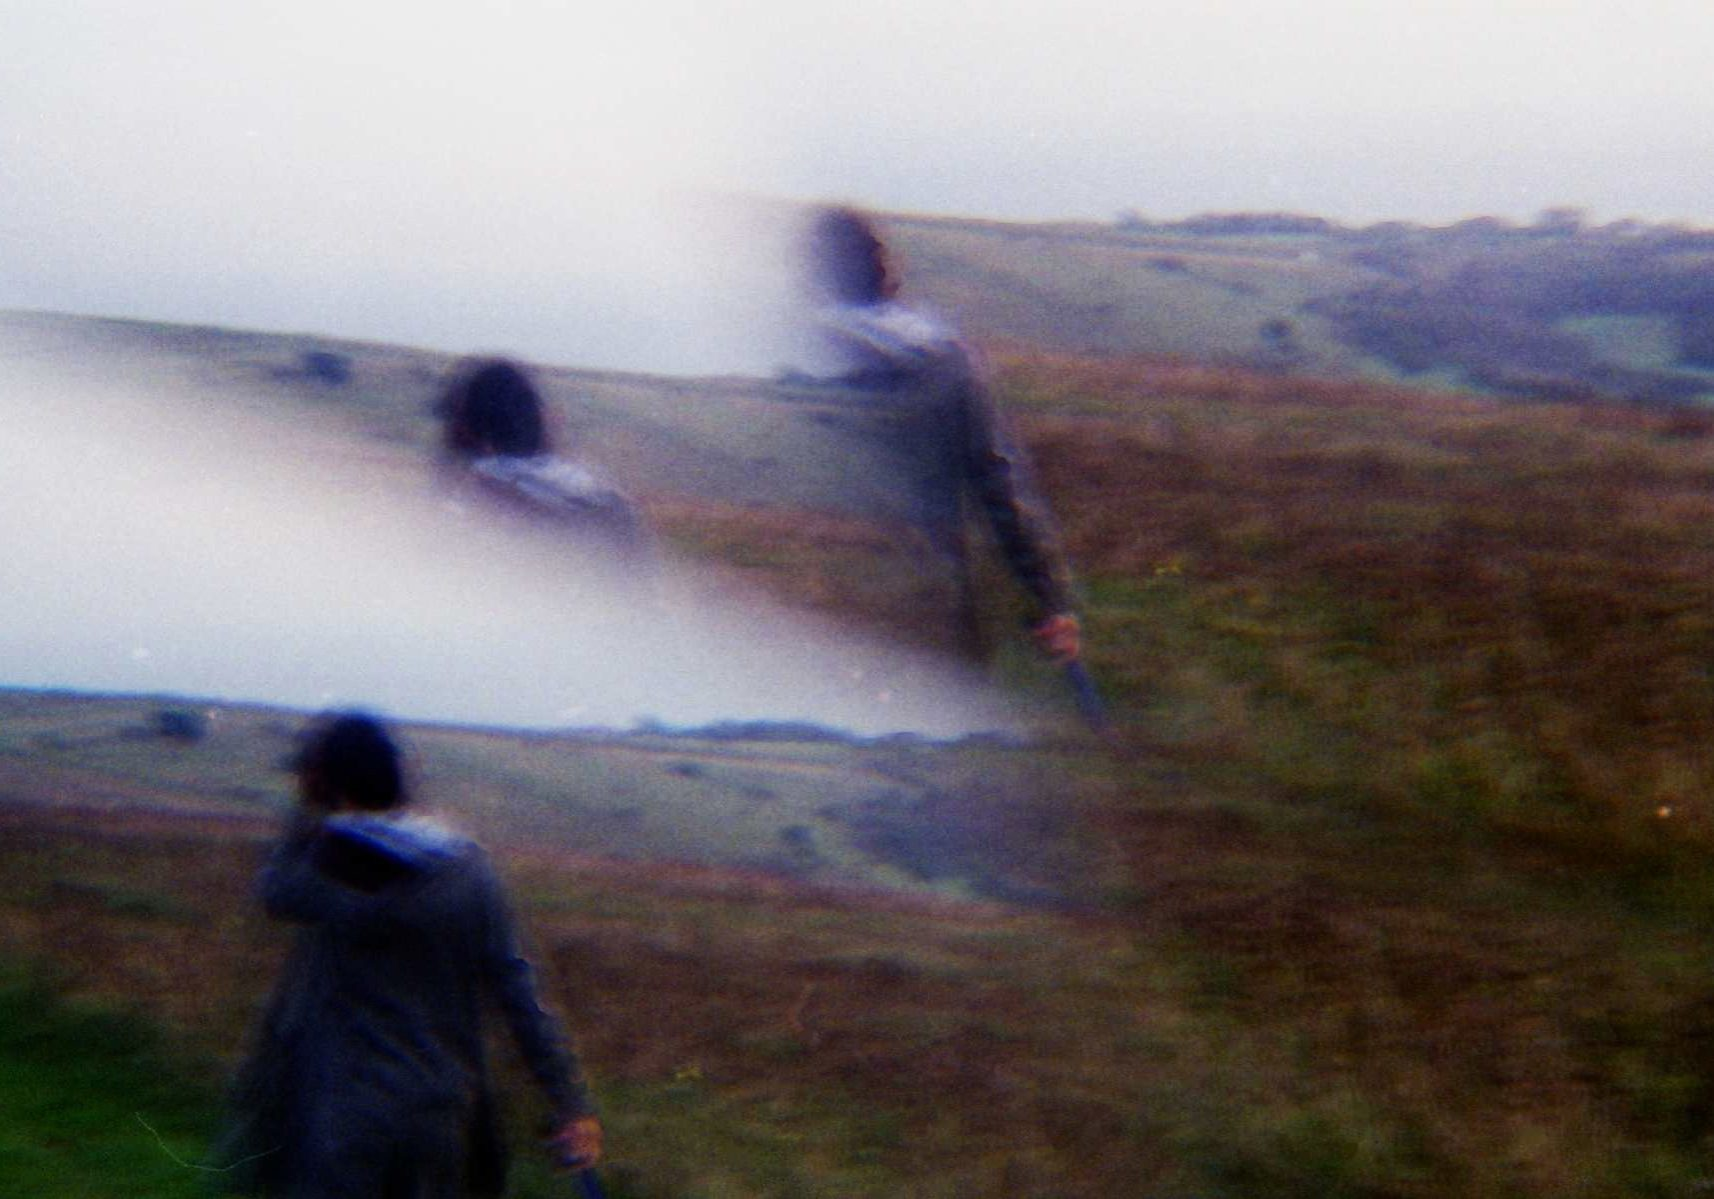 image of a woman with her back turned from the camera walking on a hill or cliff full of dry brown grass. the image has her overlaid a few times because of a film mistake.